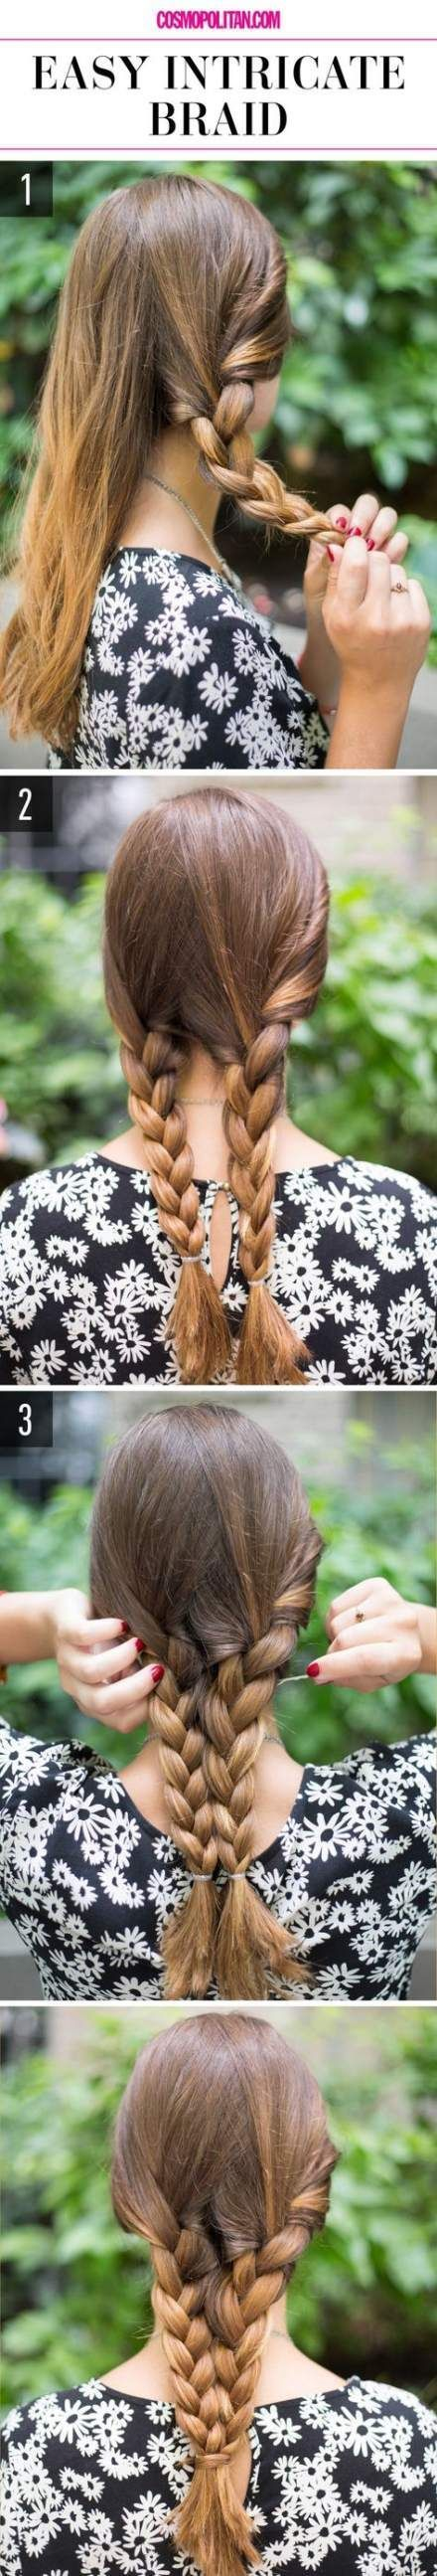 Trendy Hairstyles Lazy Girl Bobby Pins 26 Ideas - #bobby #hairstyles #ideas #tre... Check more at